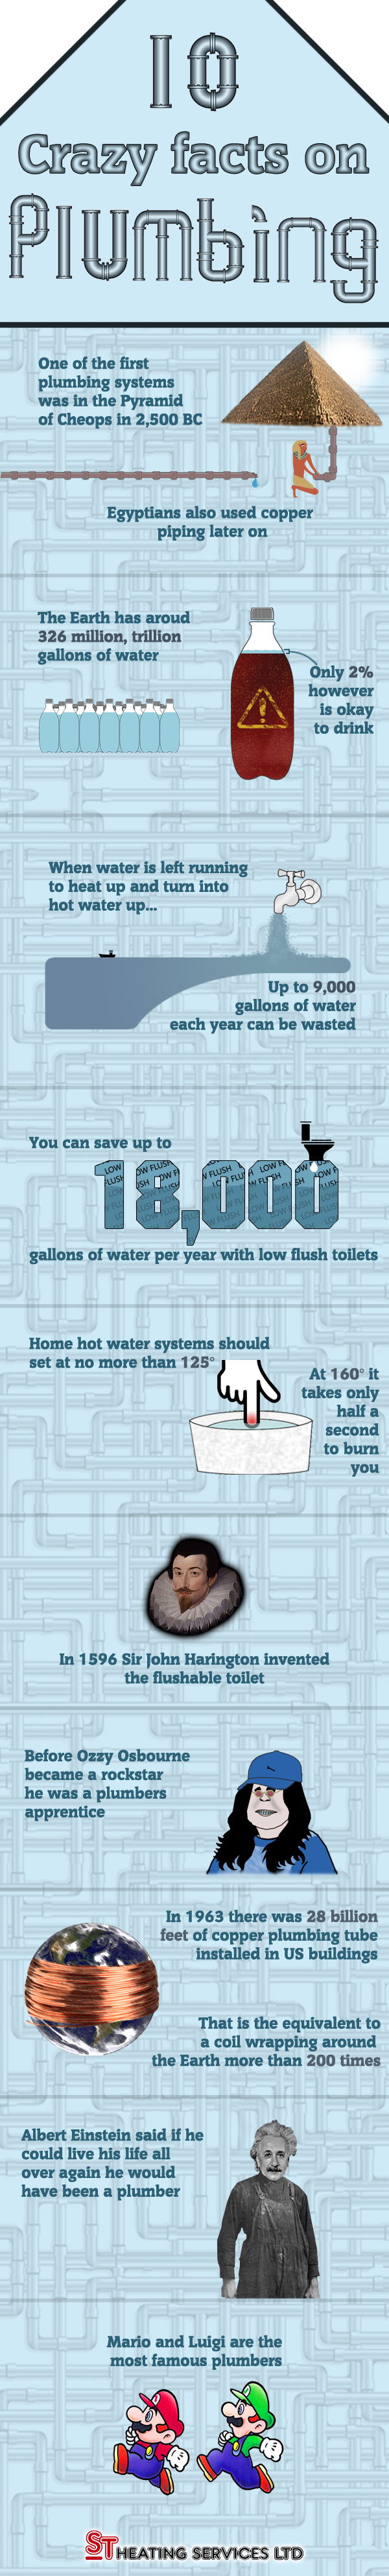 10 crazy facts on plumbing infographic